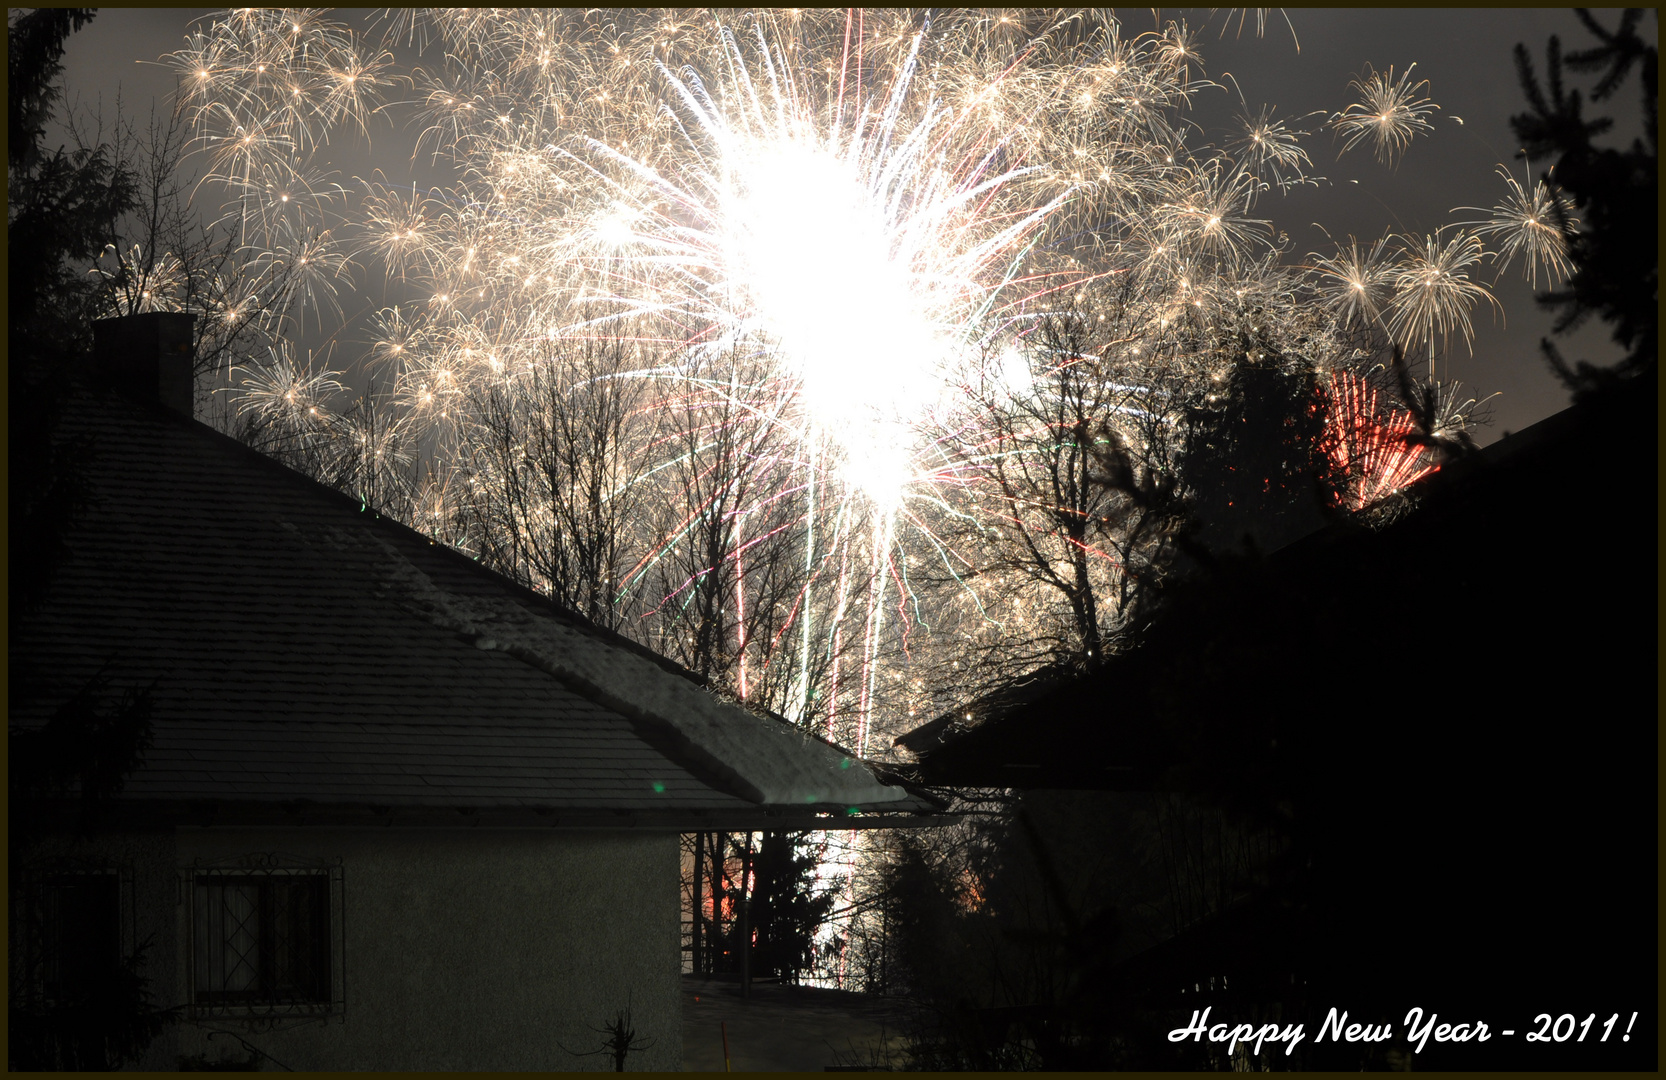 Happy New Year - 2011's gonna be awsome!